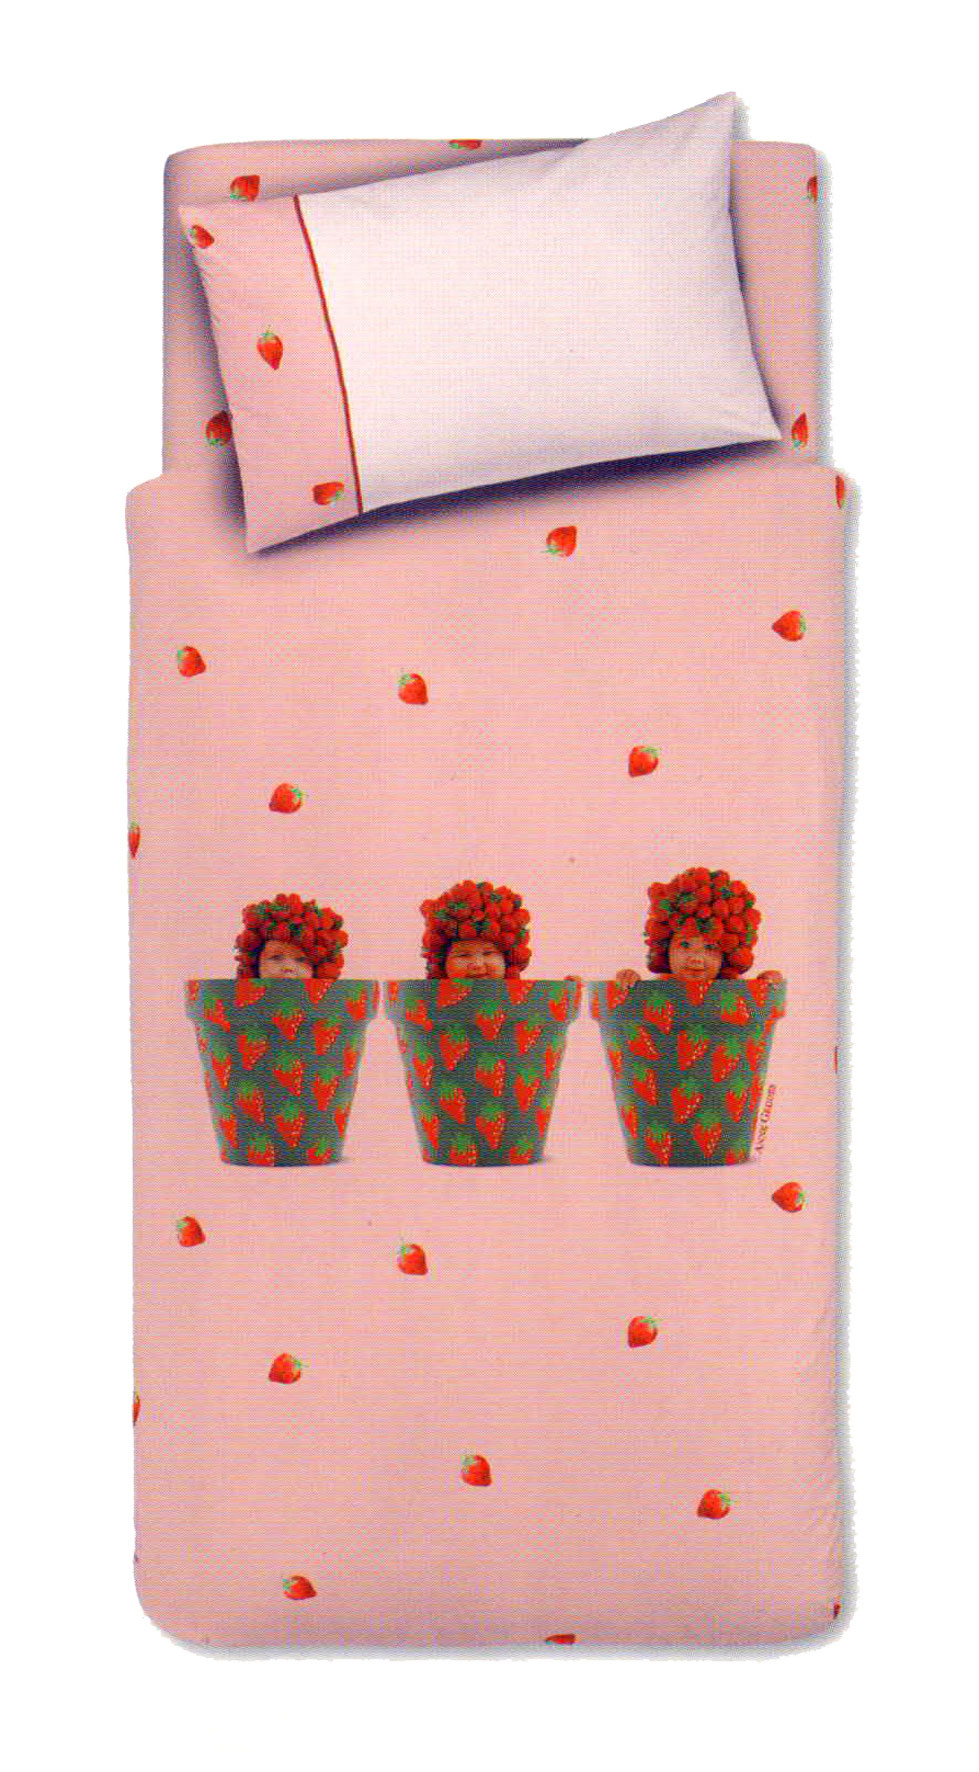 Anna Geddes Lenzuola Culla.Completo Lenzuola Letto Lettino Anne Geddes Strawberry Pots